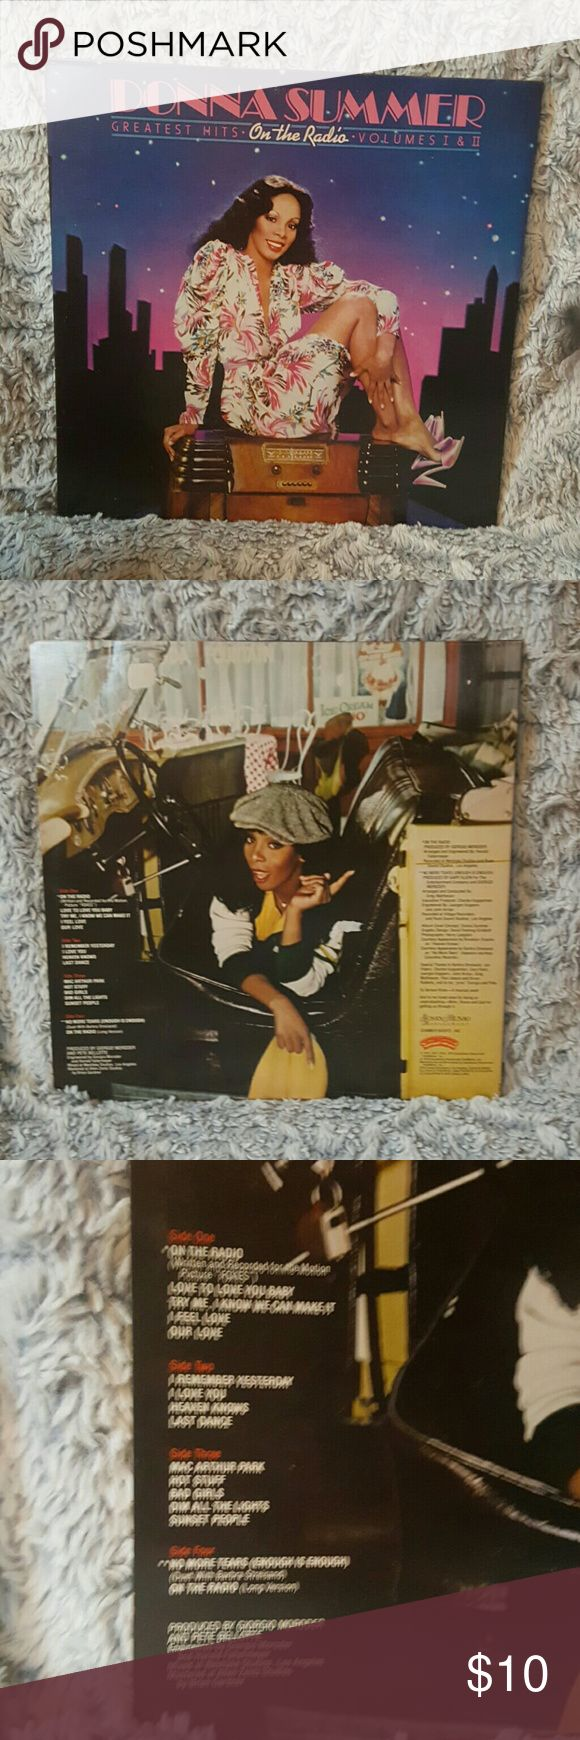 Donna Summer Vinyl Greatest hits on the radio volumes 1 and 2 Other